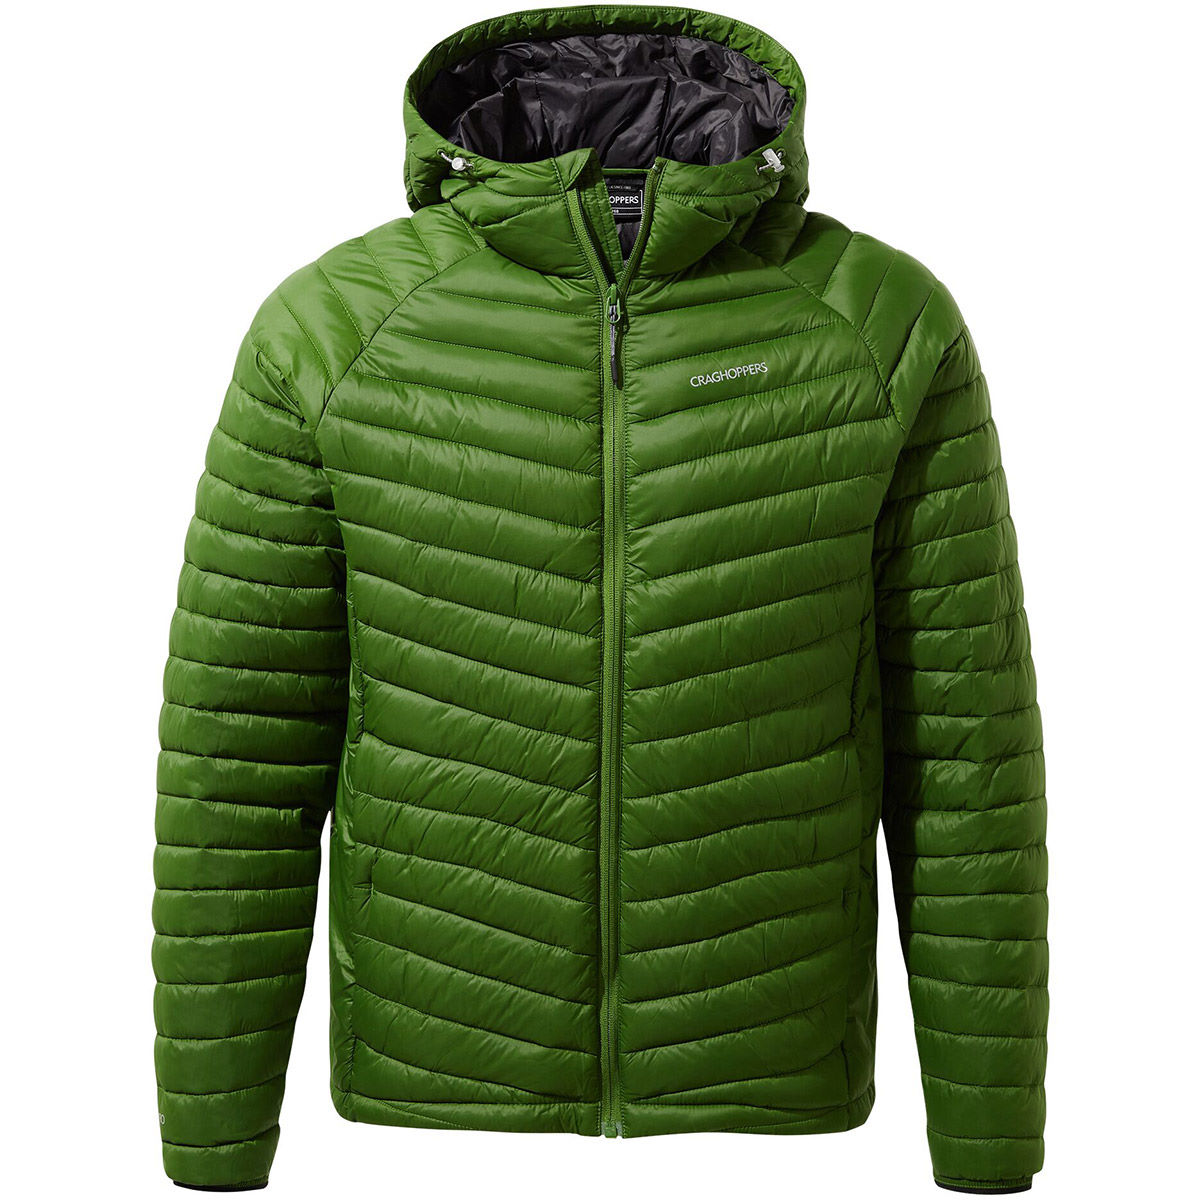 Craghoppers Expolite Hooded Jacket - Medium Dark Agave Green  Jackets